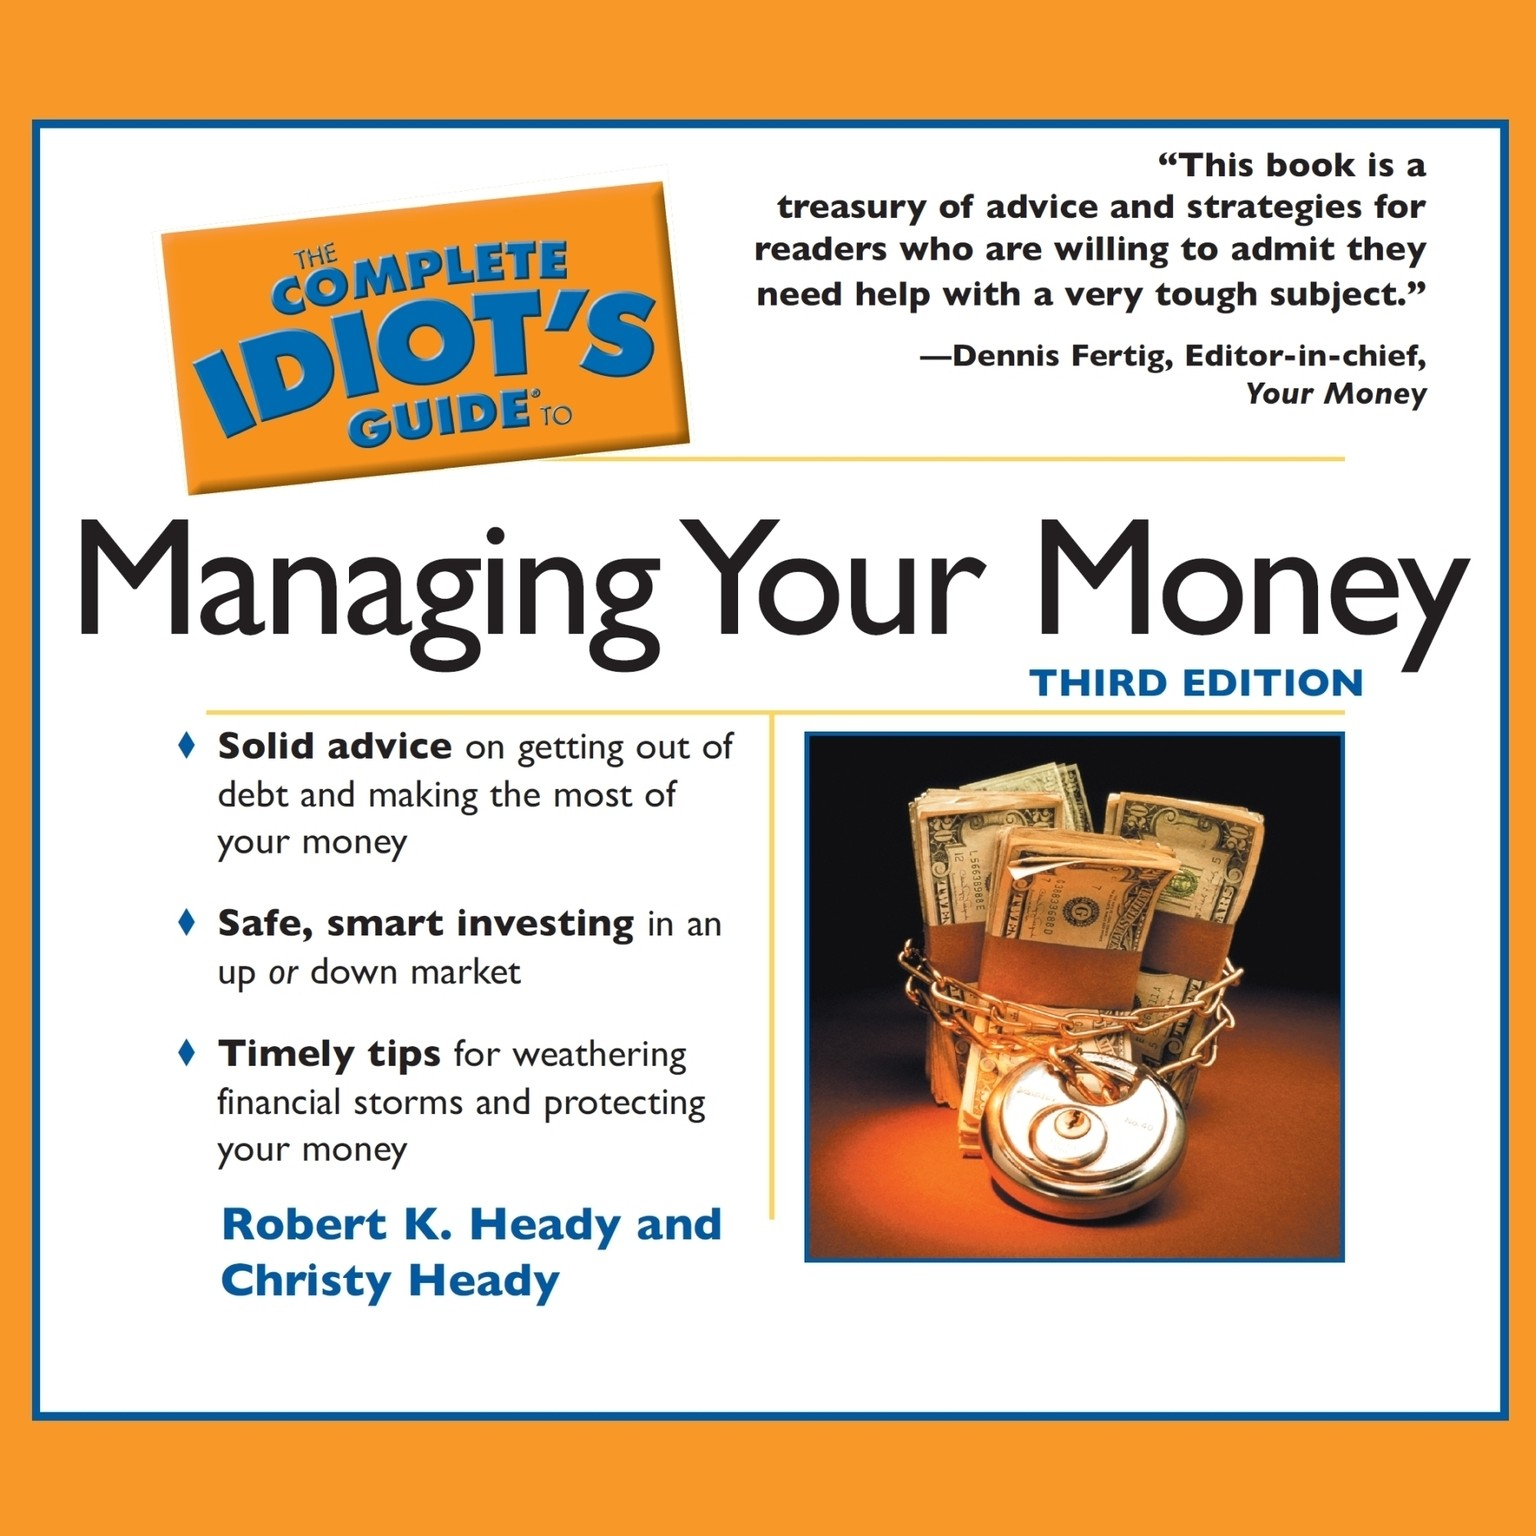 The idiots guide to managing your money